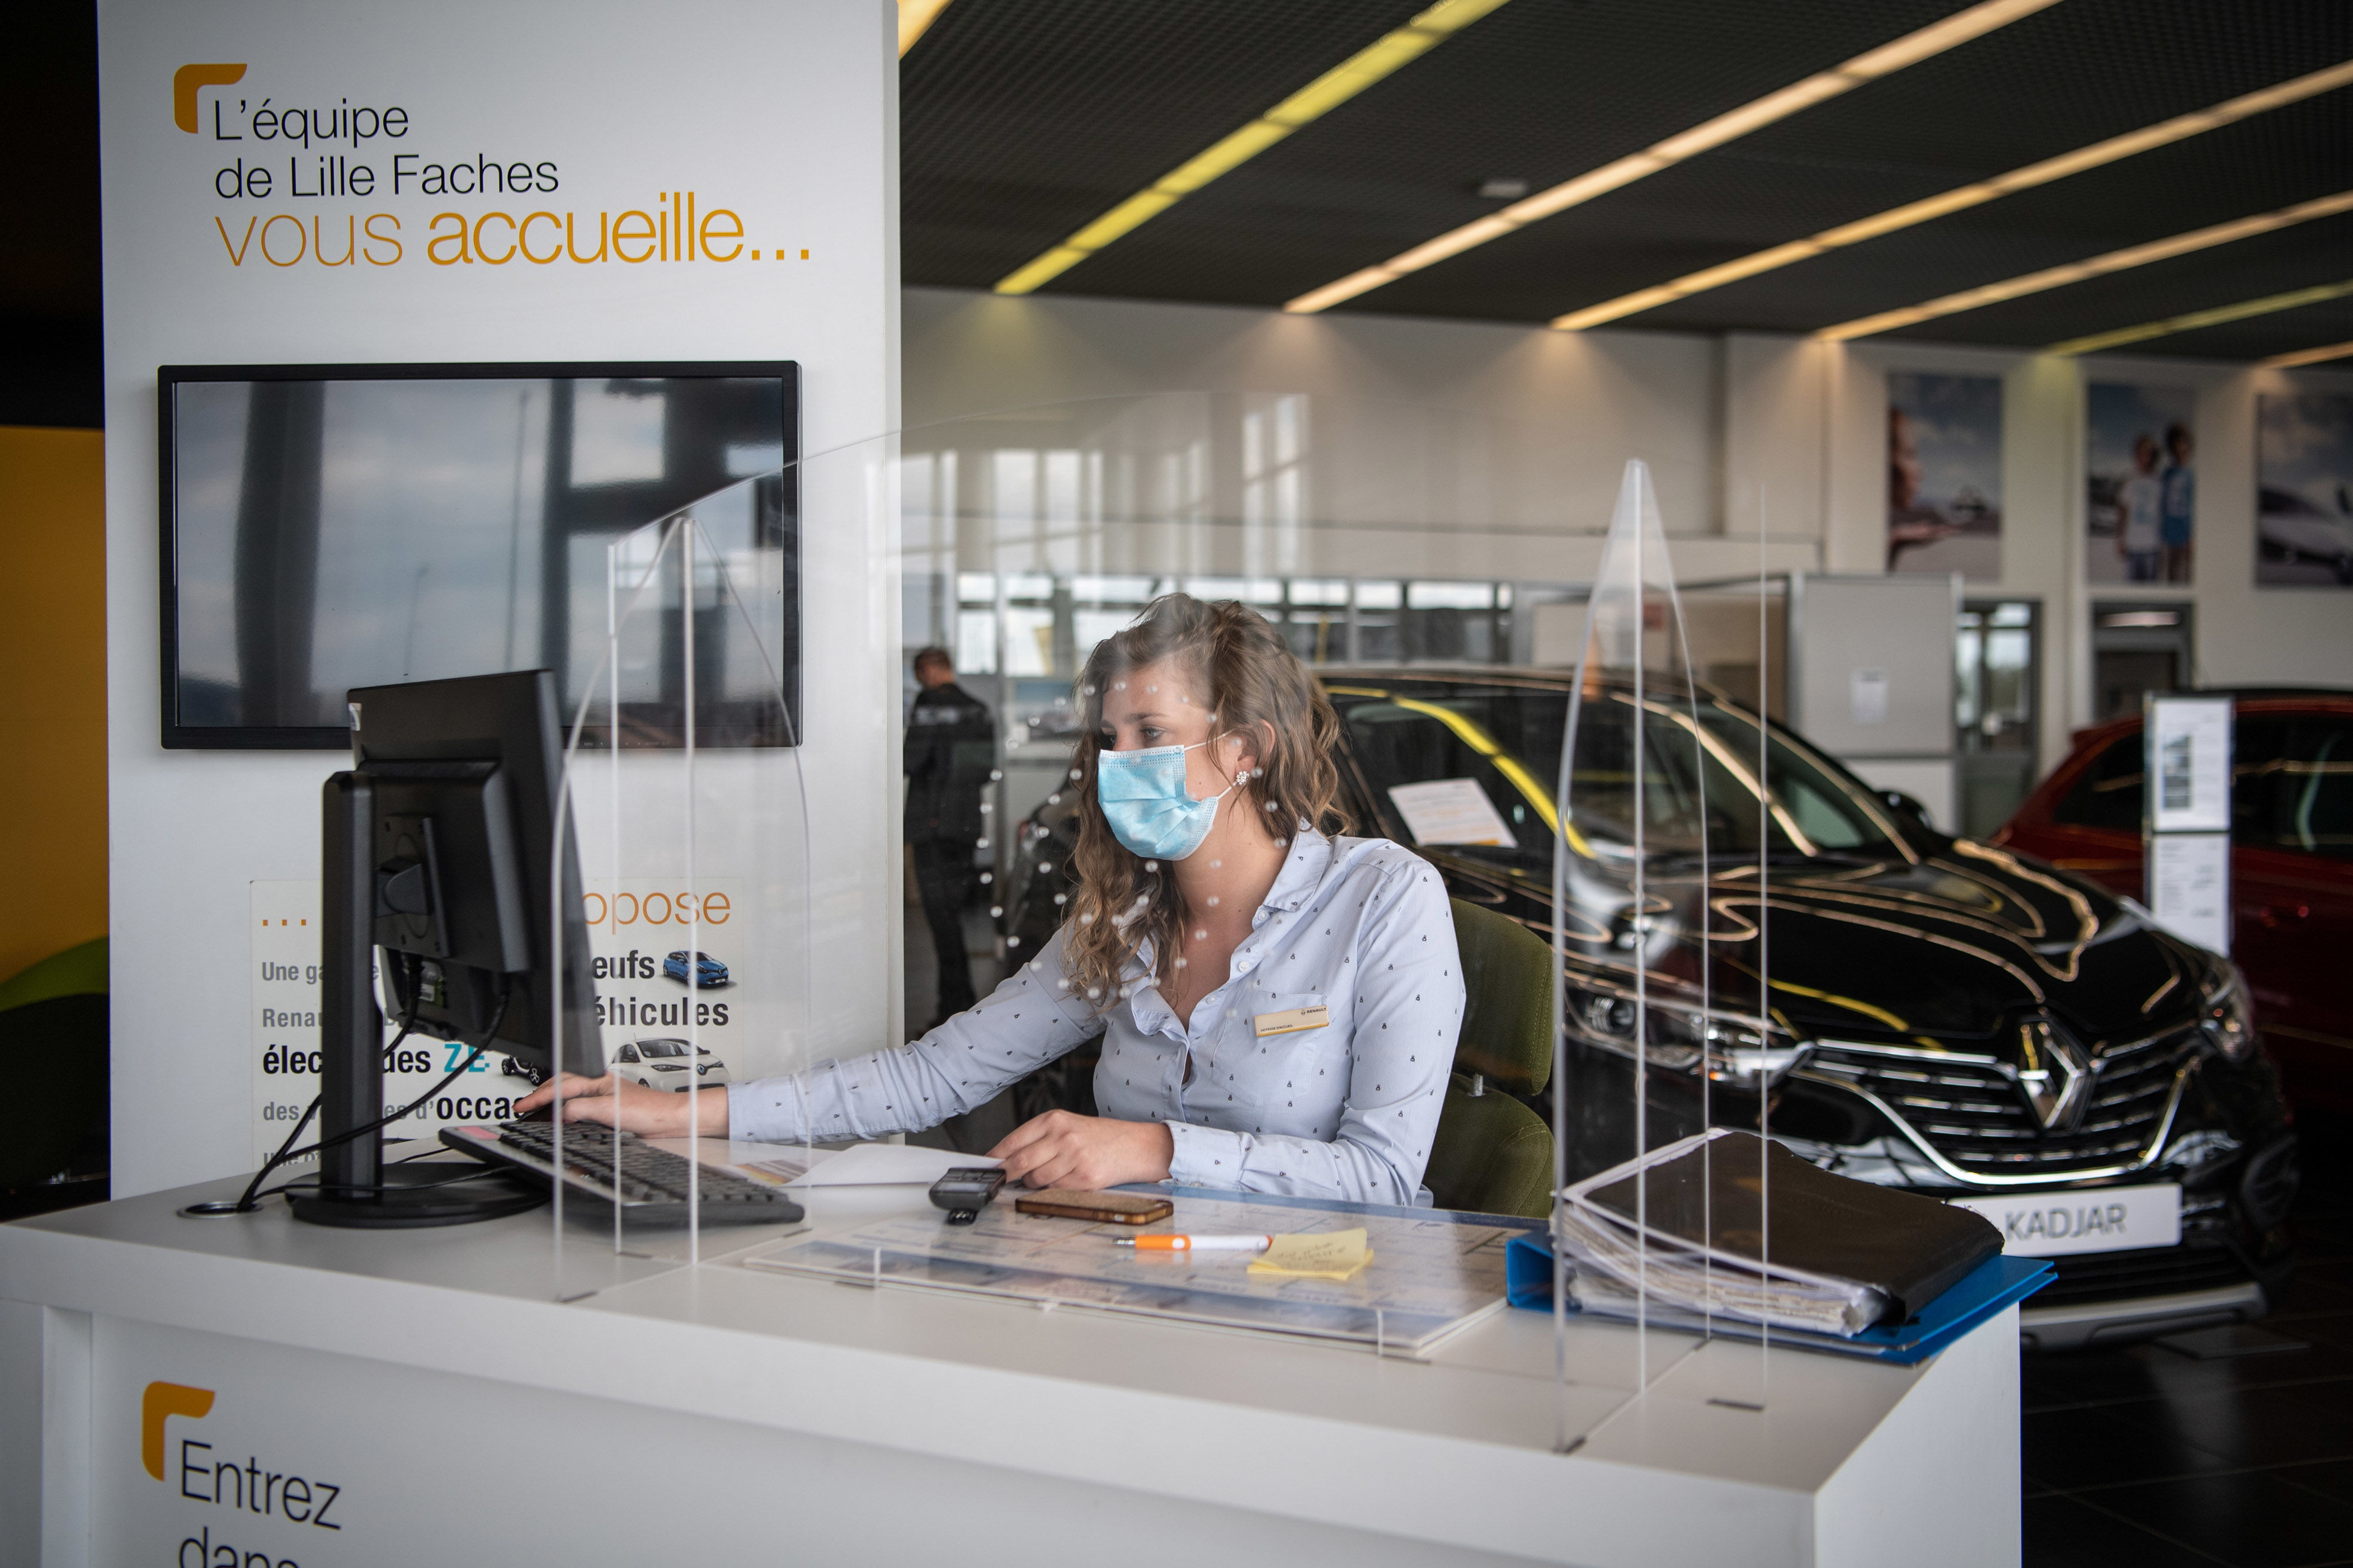 Deliveries of the new Triber AMT will start in the coming weeks. The company has also announced that the car is now available at the dealerships for test drives and customer experience. (File photo of a Renault showroom used for representational purpose). (Bloomberg)